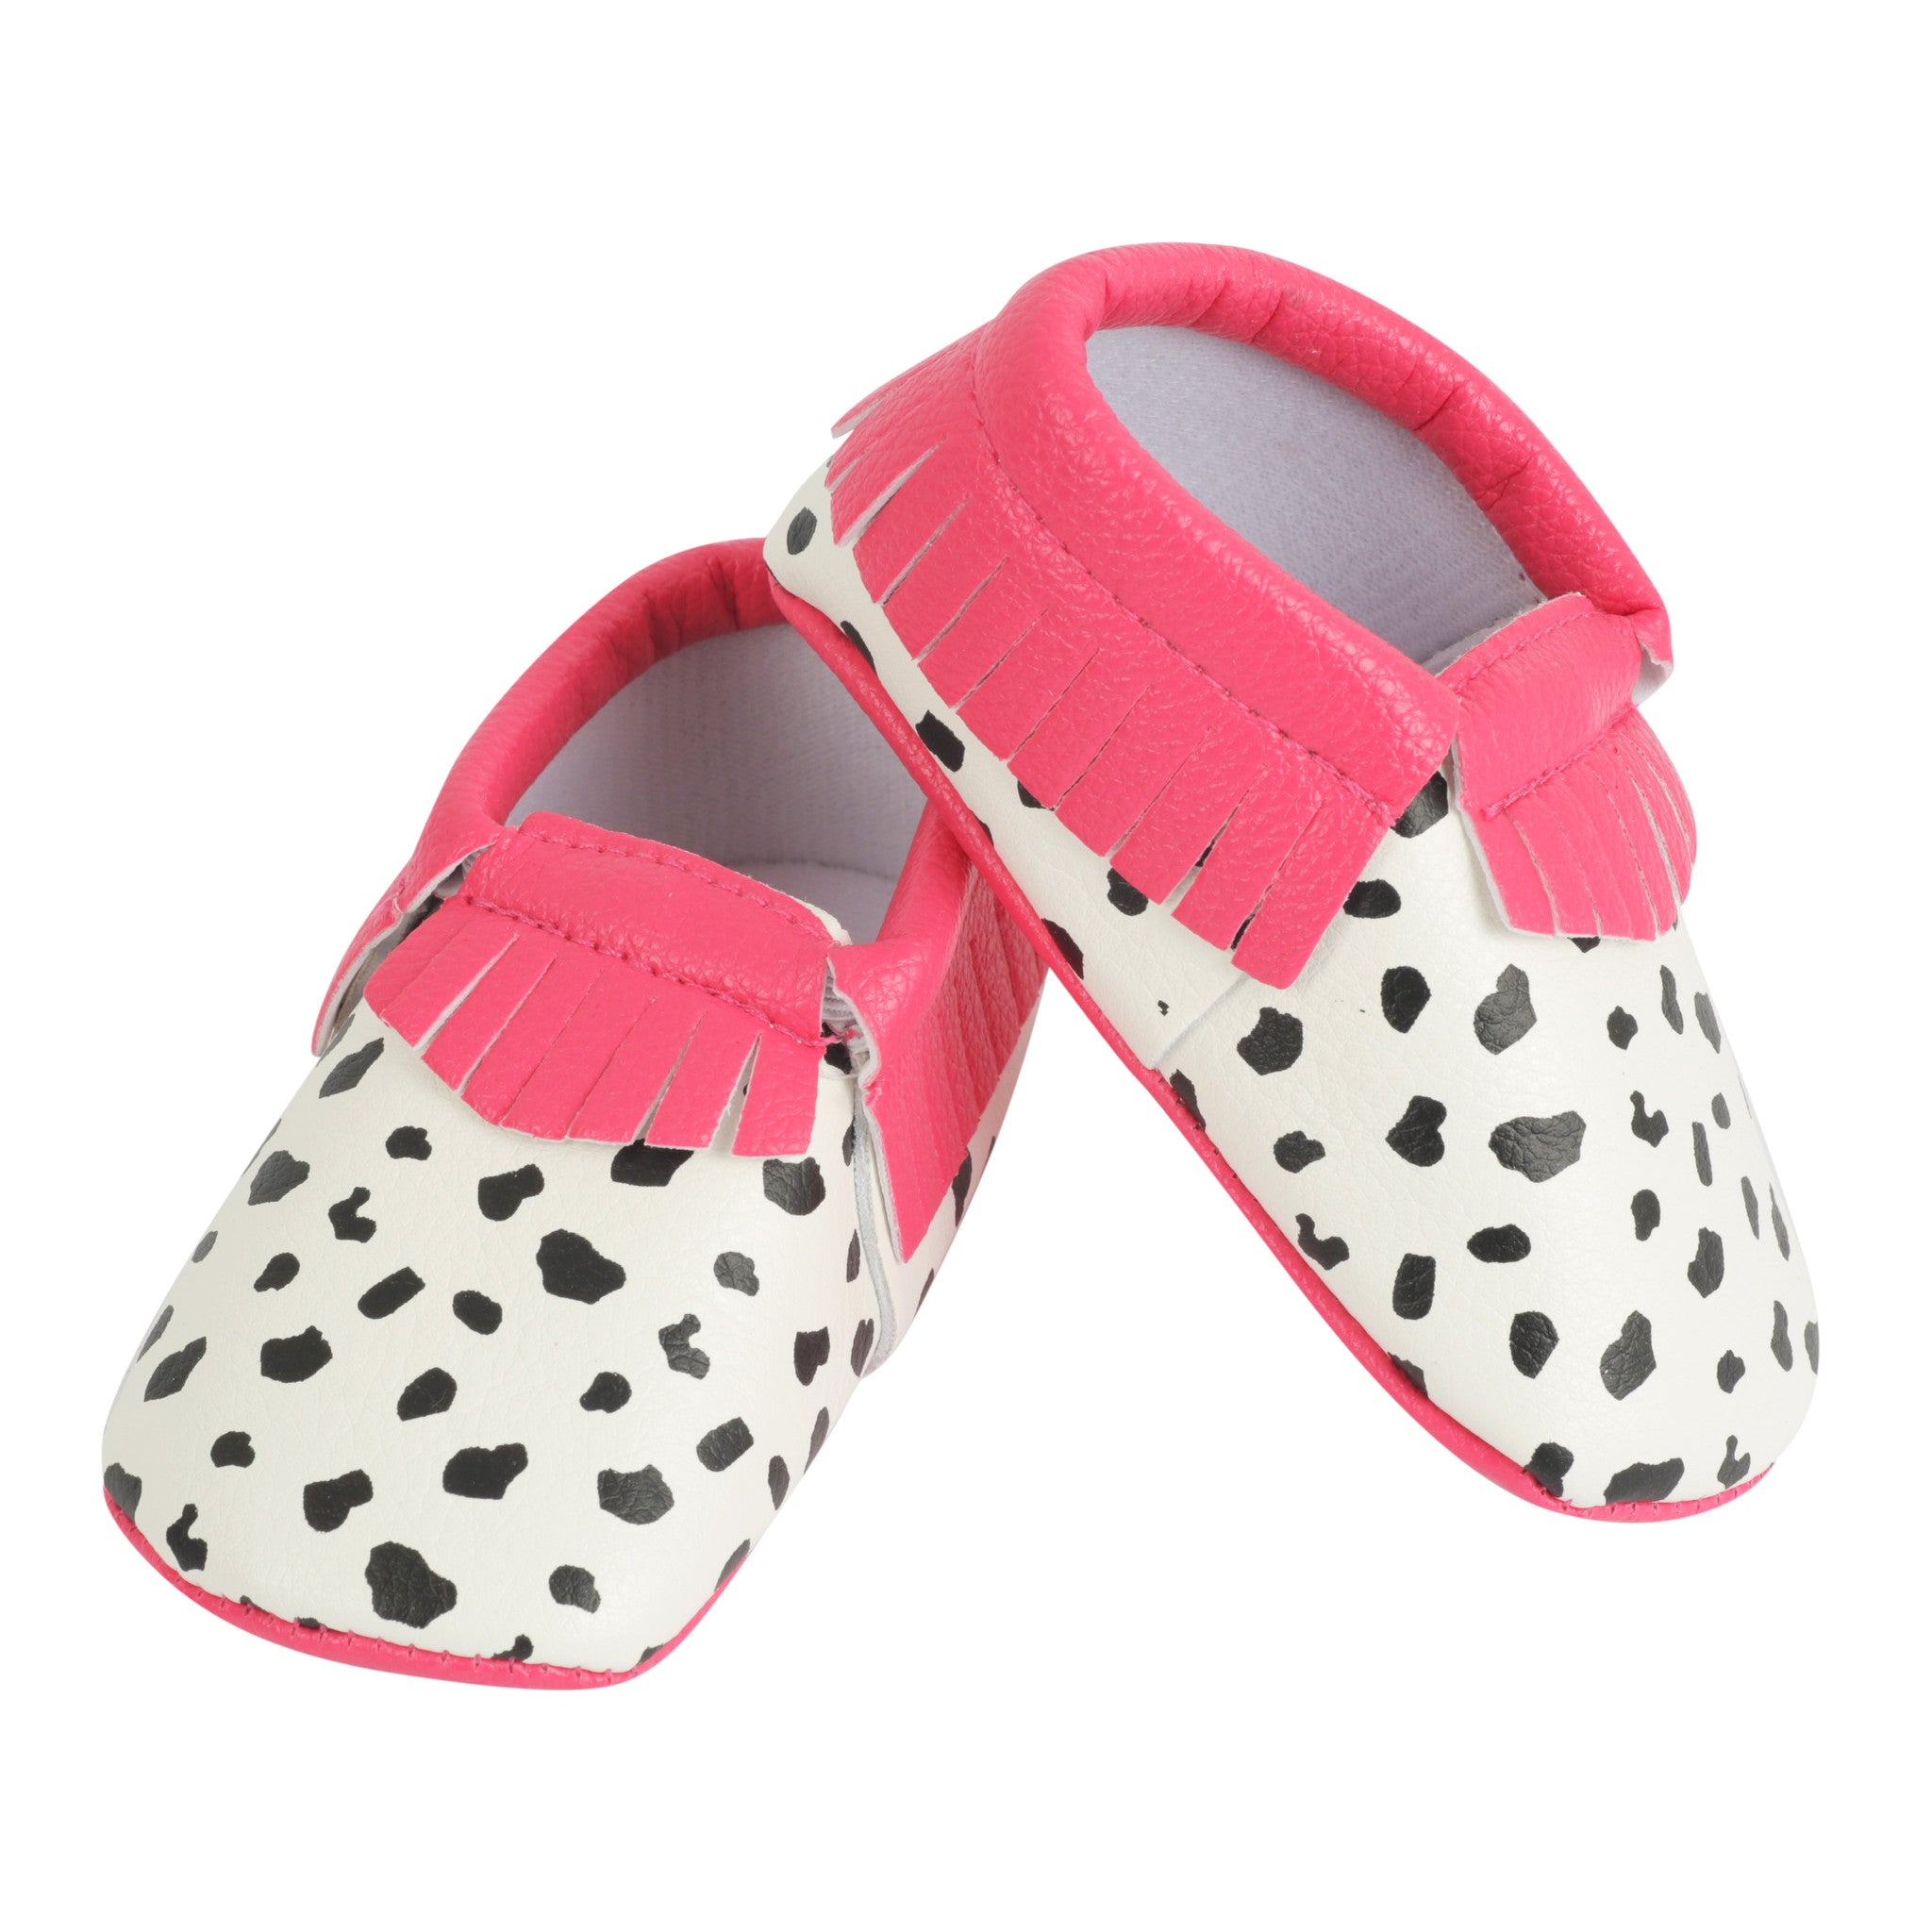 Moccasin, Pre-Walker Baby & Toddler Shoes - Spots